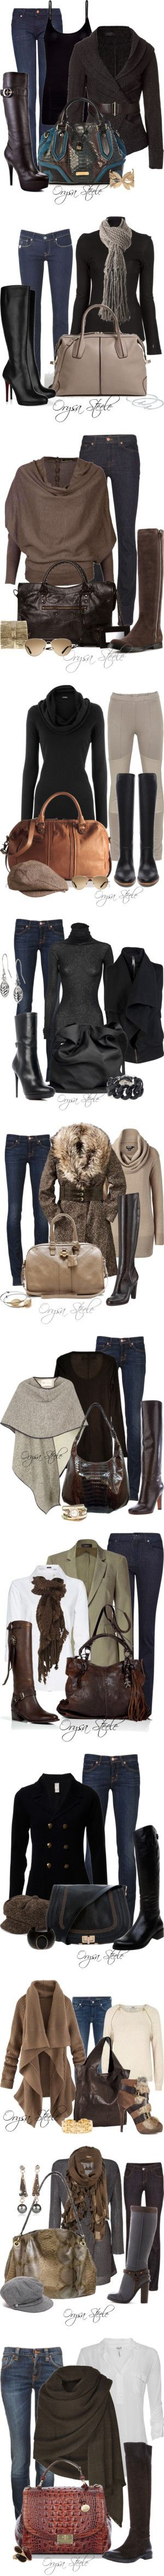 Fall ♥ I need to get skinnier to wear these!: Fall Clothing, Fall Wint, Winter Style, Fall Looks, Winter Outfit, Fall Boots, Fall Fashion, Fall Outfit, Fall Styles